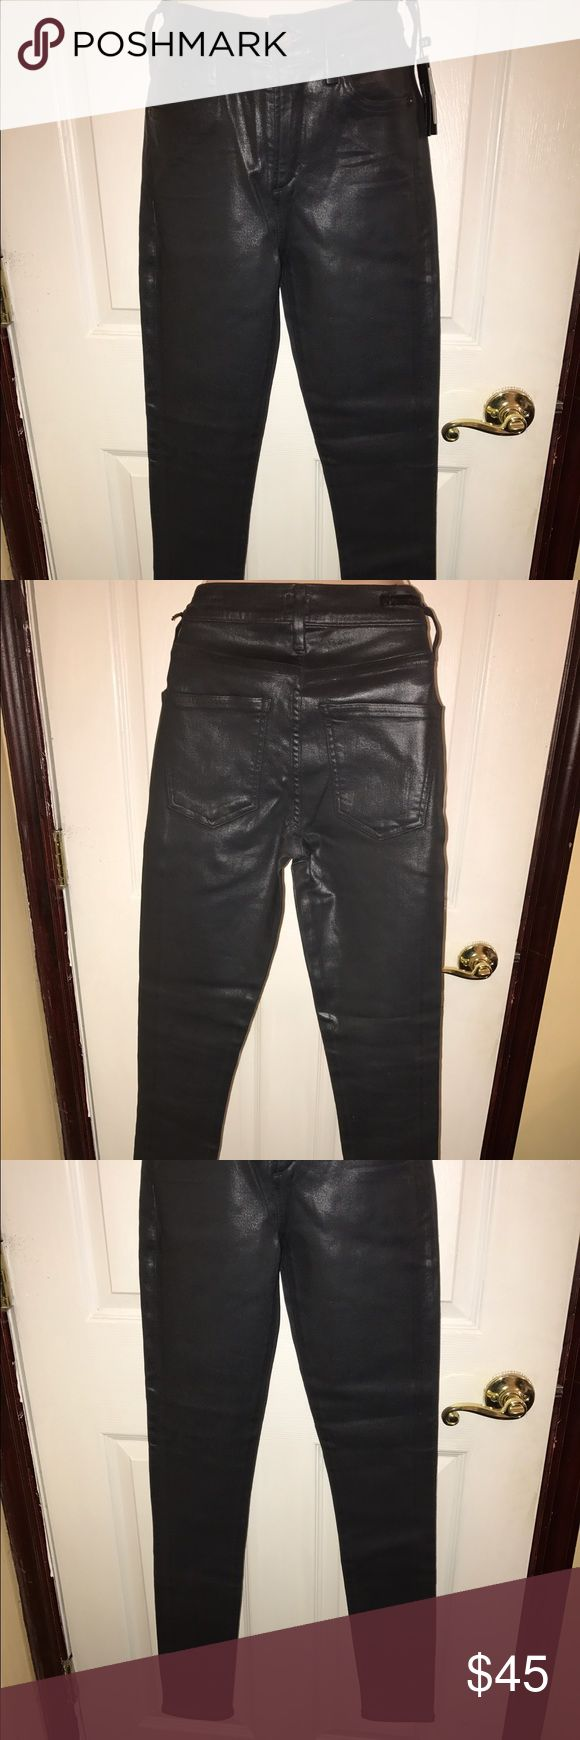 NWT CITZENS OF HUMANITY SKINNY JEANS Hot and trendy skinny jeans new with tags. Charcoal color with a sheen look. 3 front pockets and two back pockets. 5 belt hoops. Measurements: waist: 13in, length from waist: 40in, hips: 14.5 in Citizens of Humanity Jeans Skinny